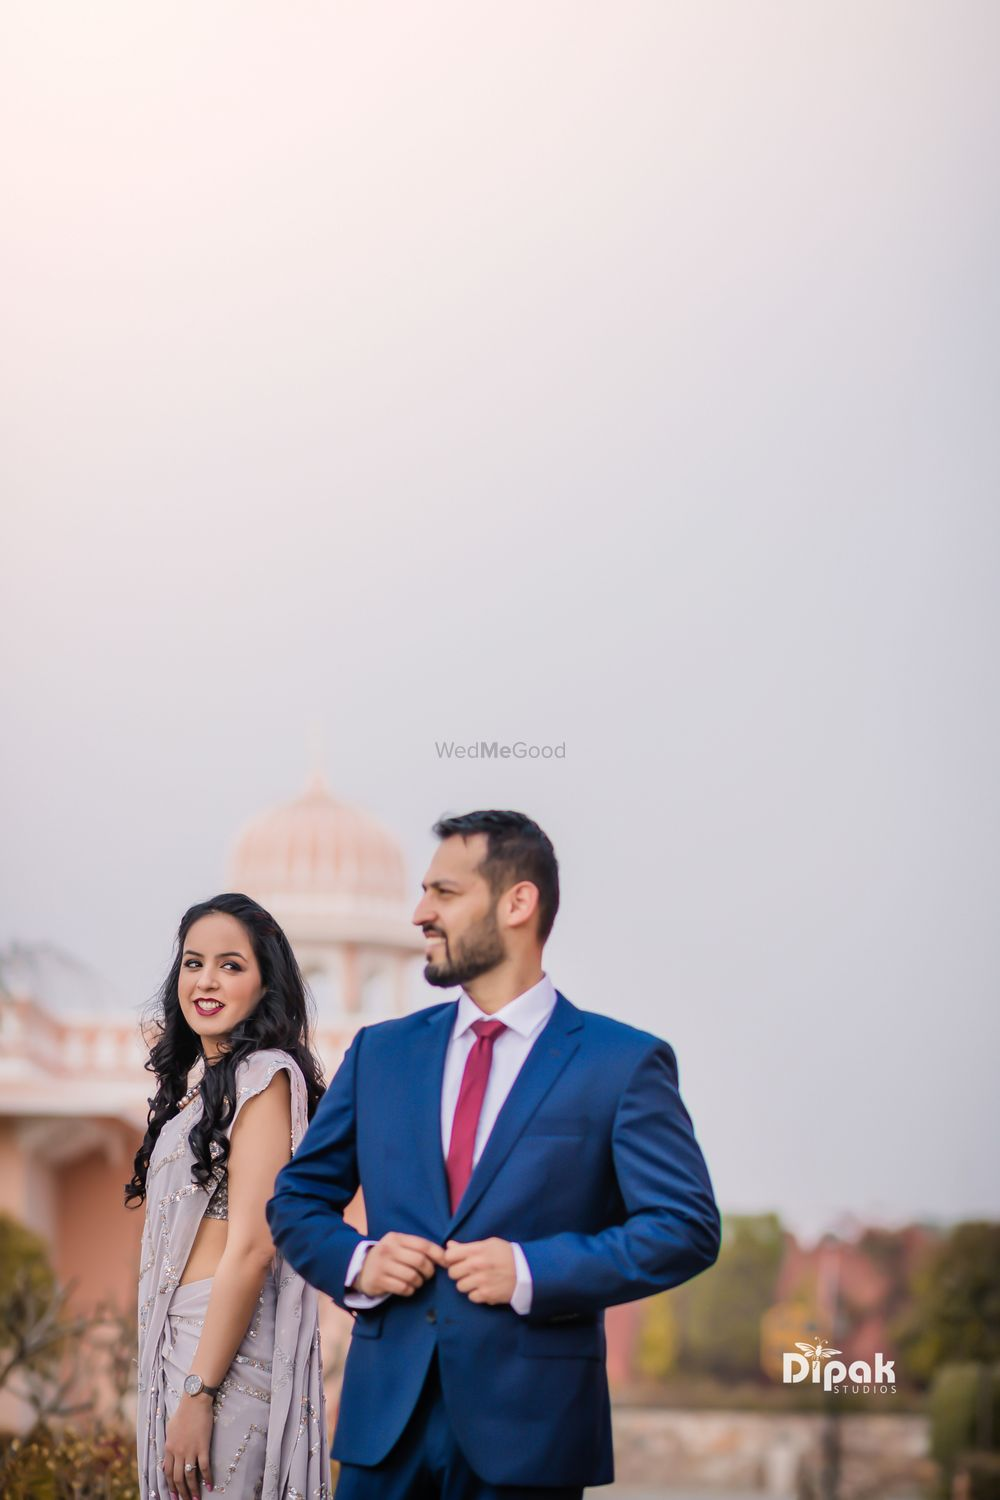 Photo From Priya + Vishesh  - By Dipak Studios